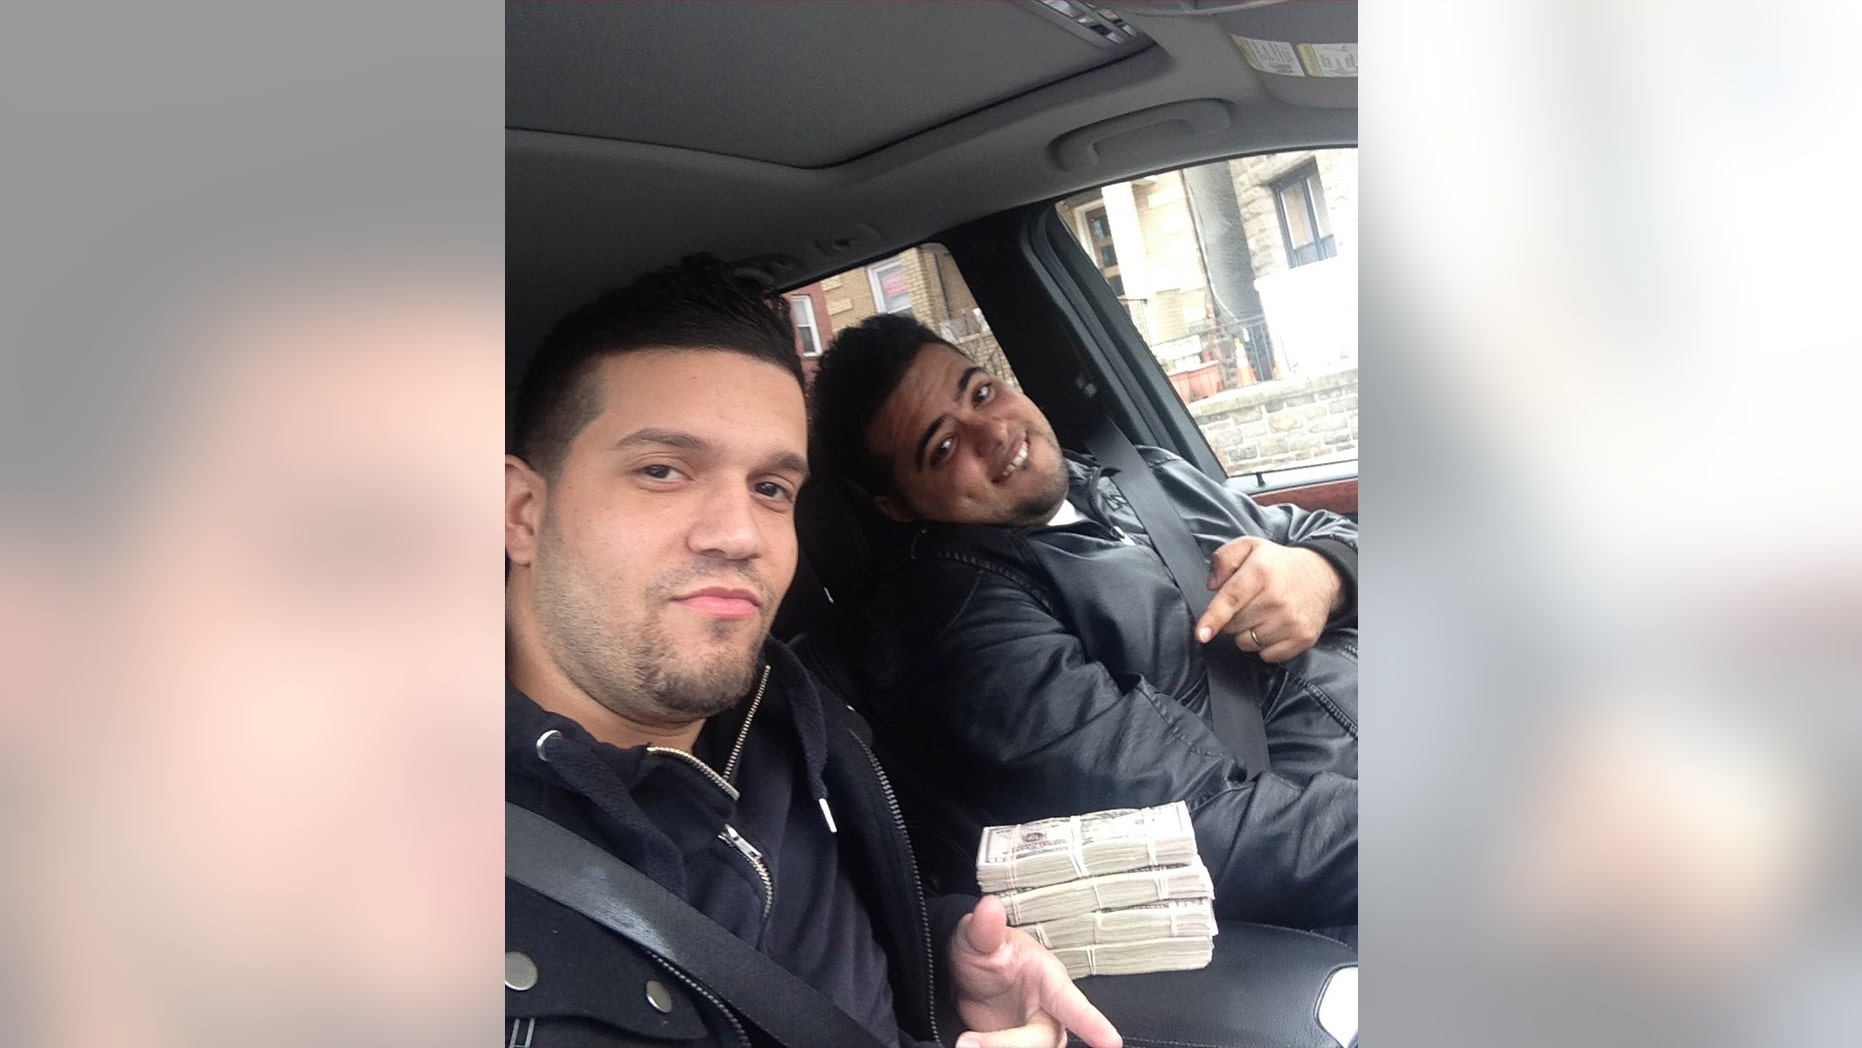 May 9, 2013: In this undated photo provided by the United States Attorneys Office for the Southern District of New York, Elvis Rafael Rodriguez, left, and Emir Yasser Yeje, pose with bundles of cash allegedly stolen using bogus magnetic swipe cards at cash machines throughout New York.